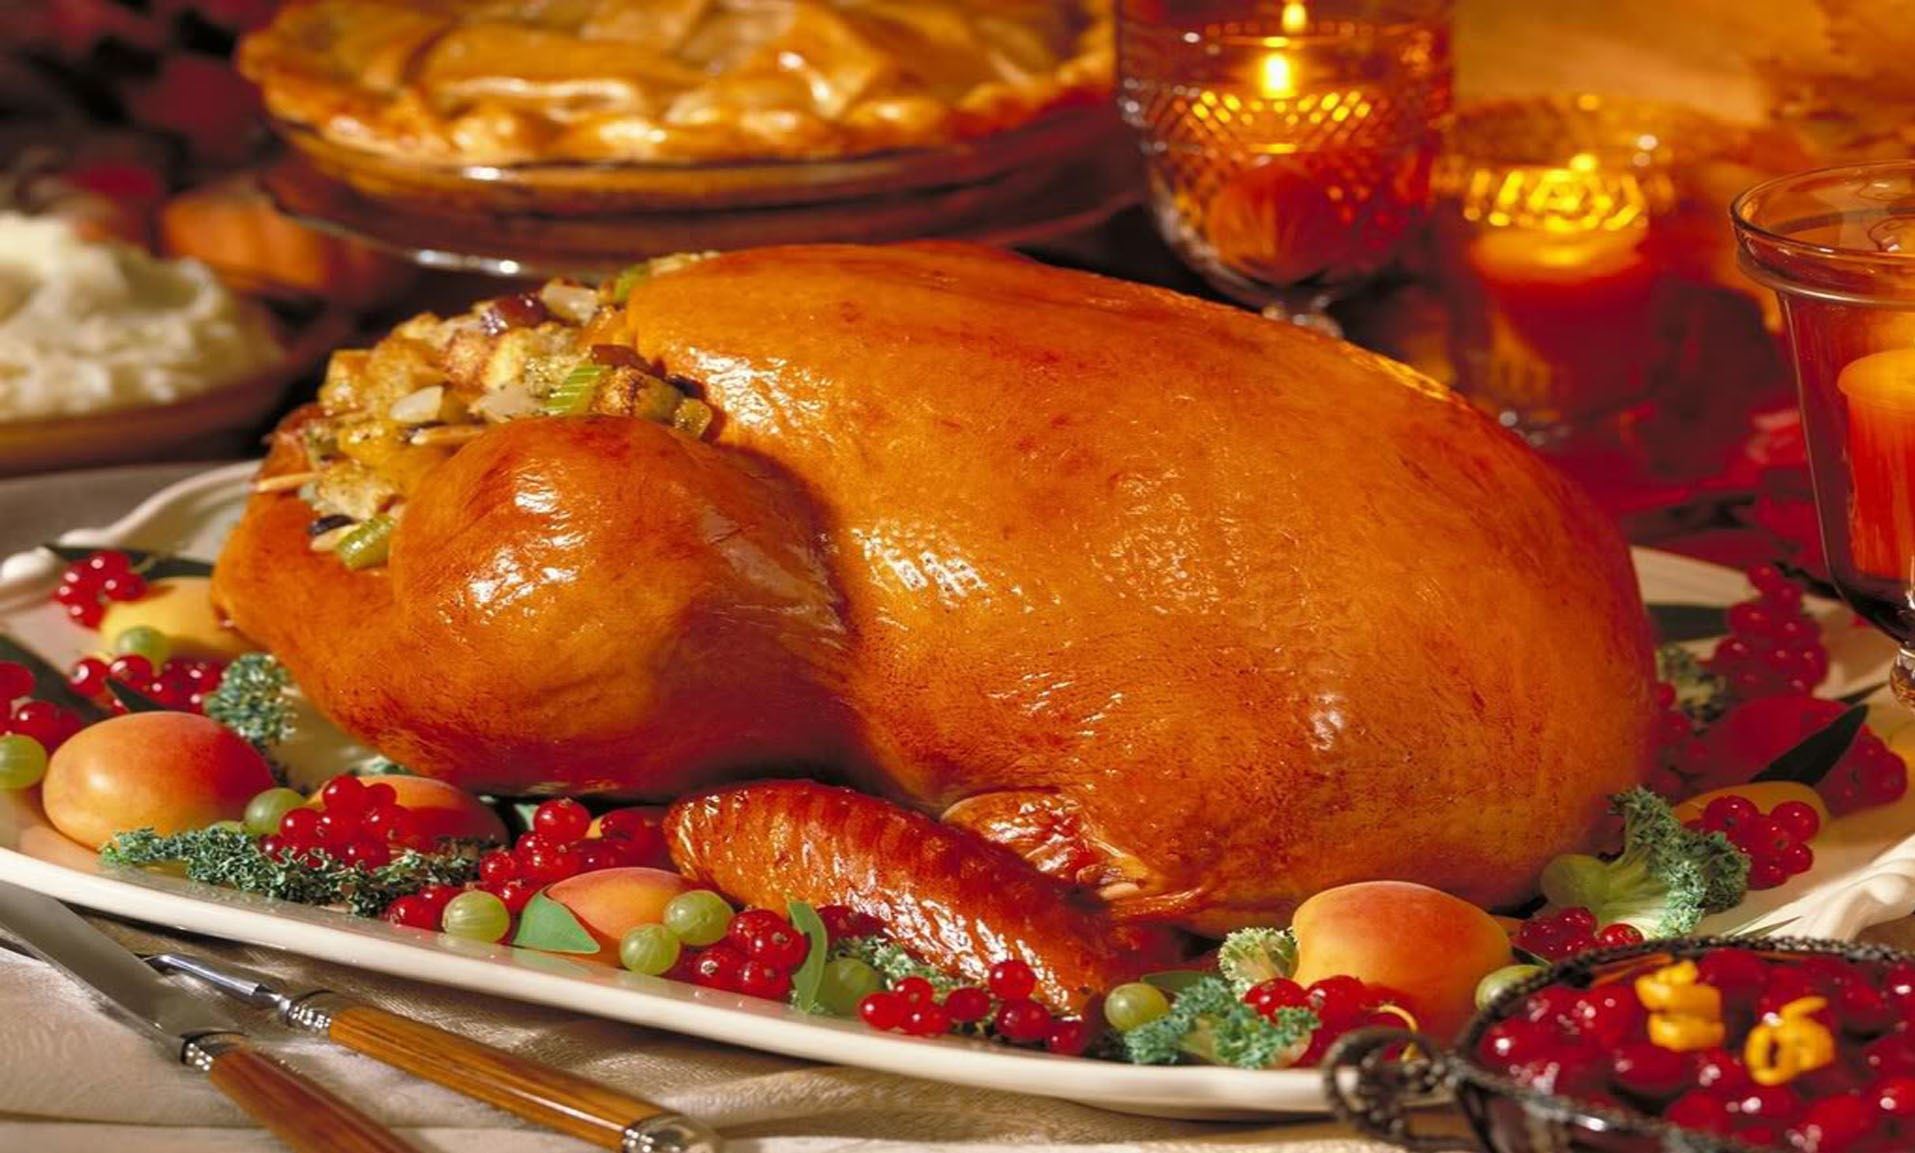 http://www.thcfinder.com/uploads/files/perfect-thanksgiving-turkey-recipe.jpg